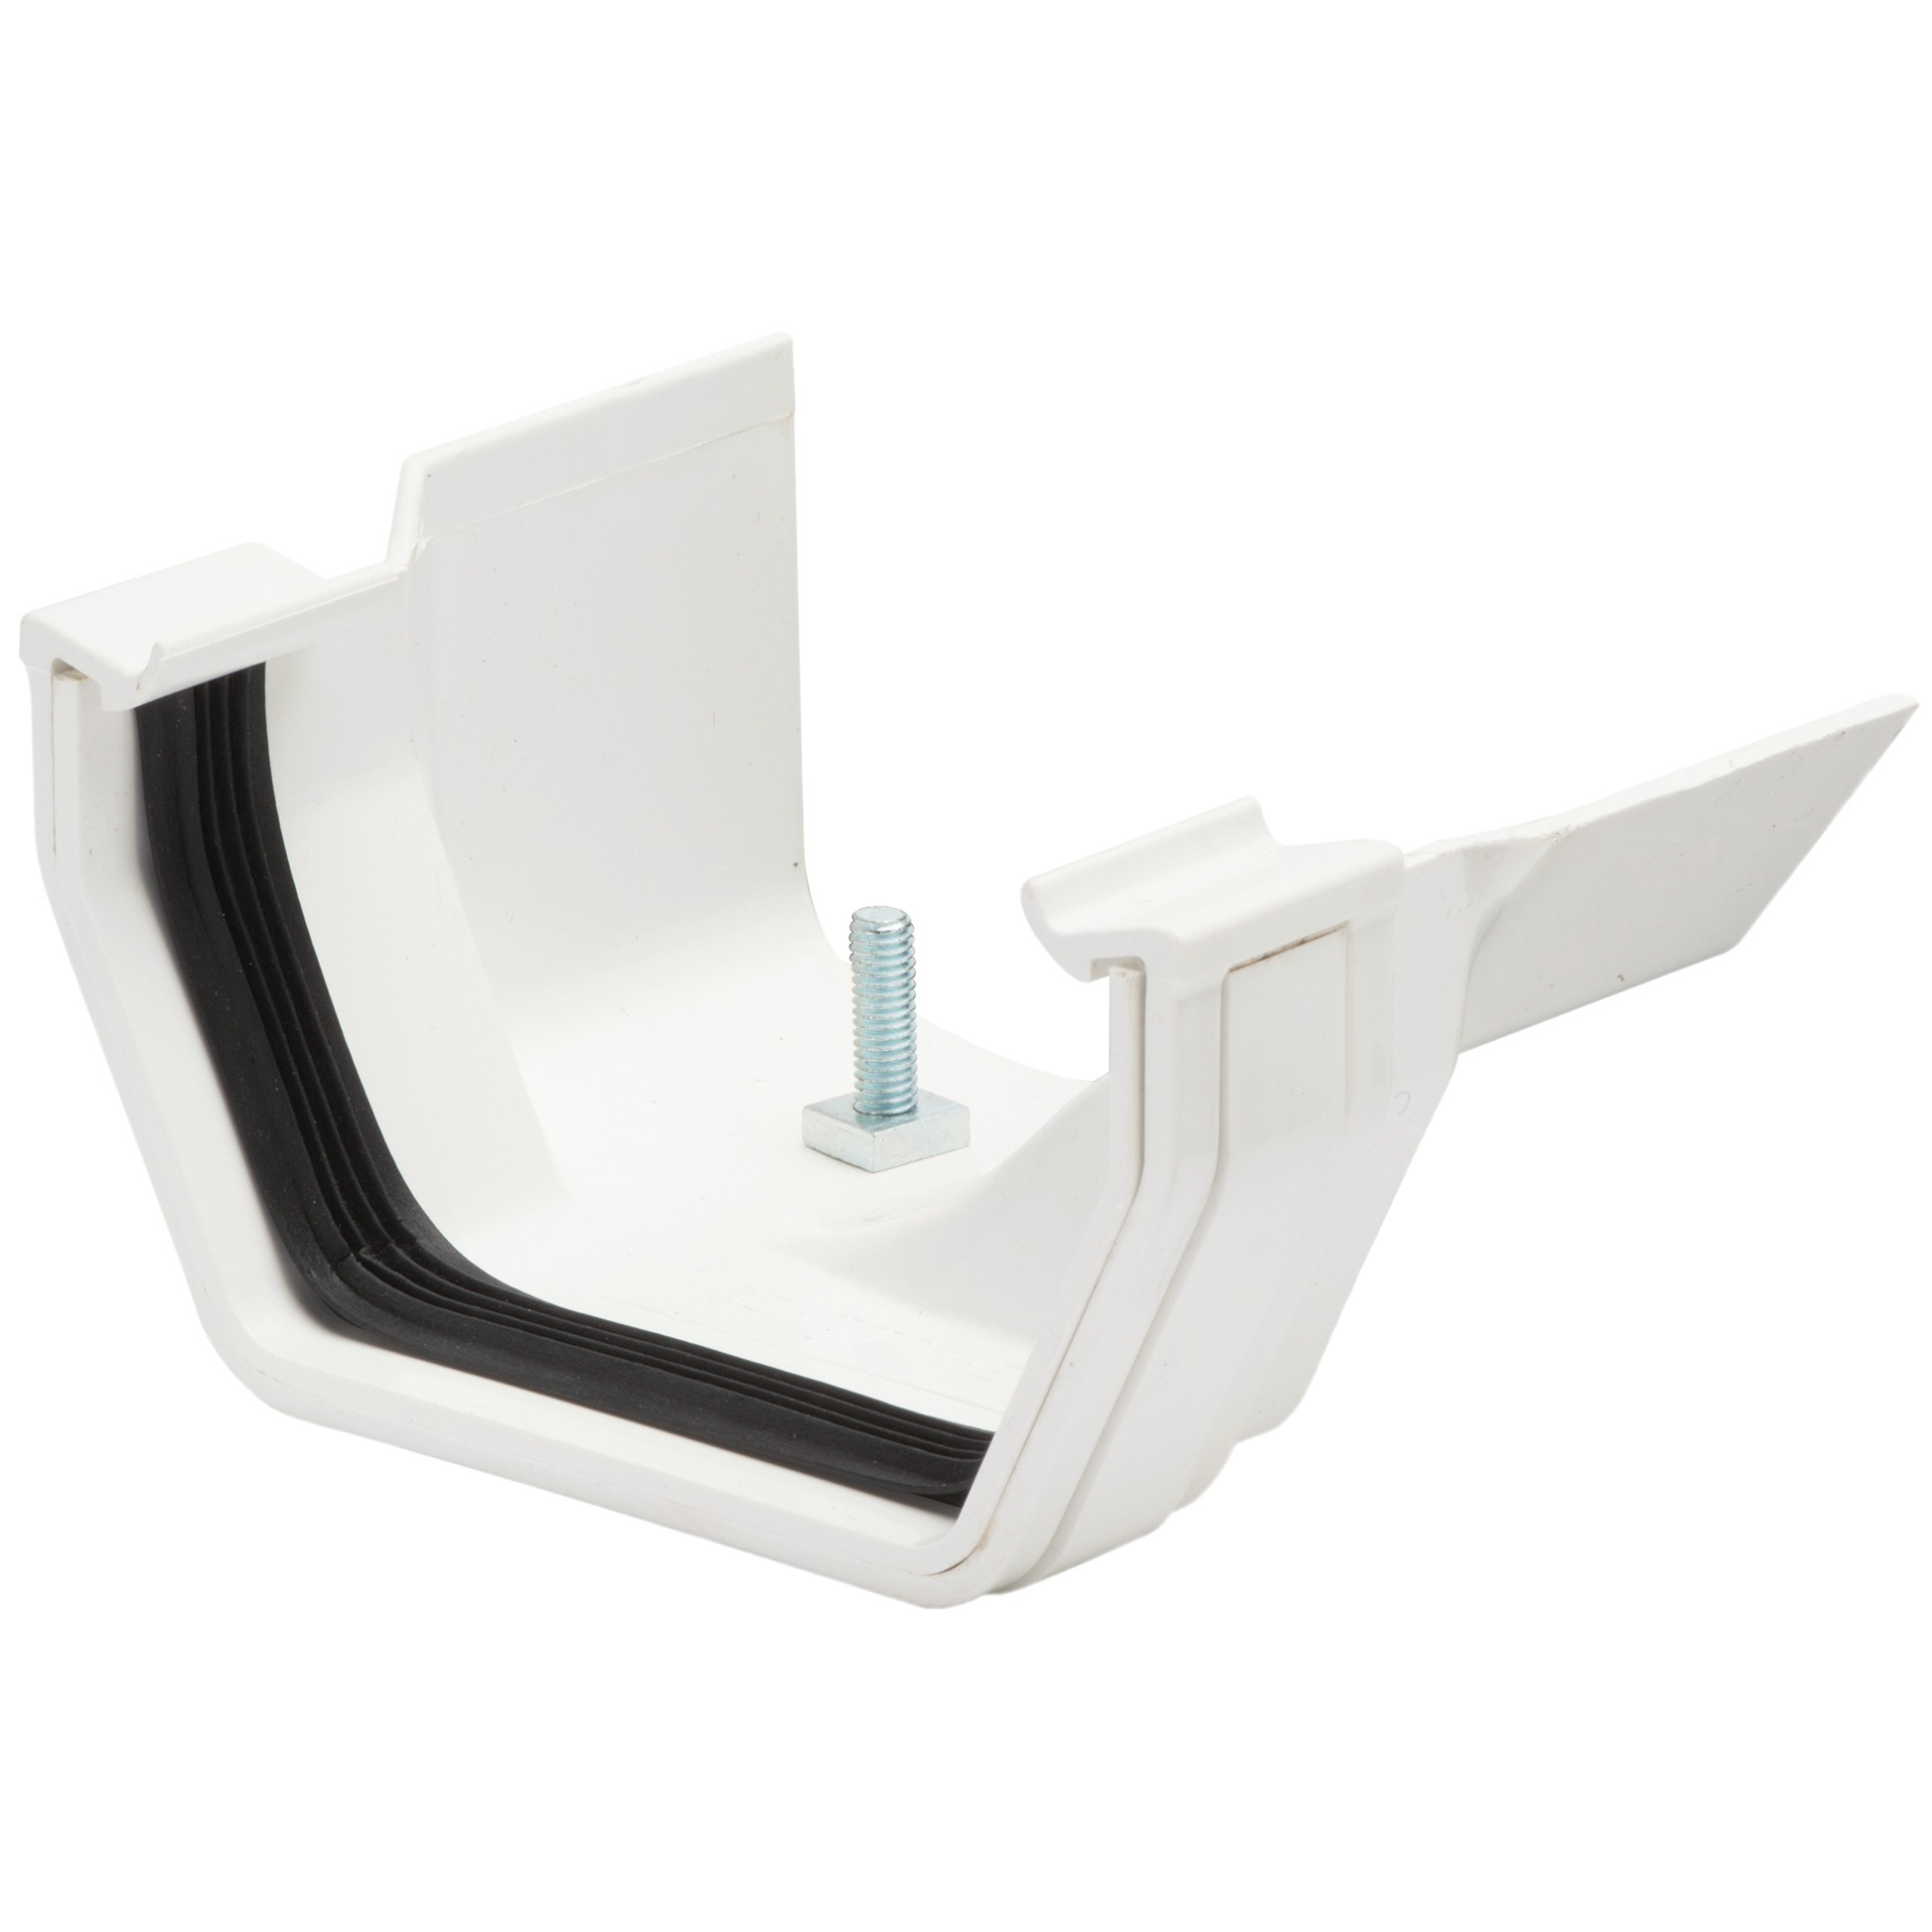 Polypipe 112mm Square to 130mm Metal Ogee Gutter Adaptor (Right Hand) - White